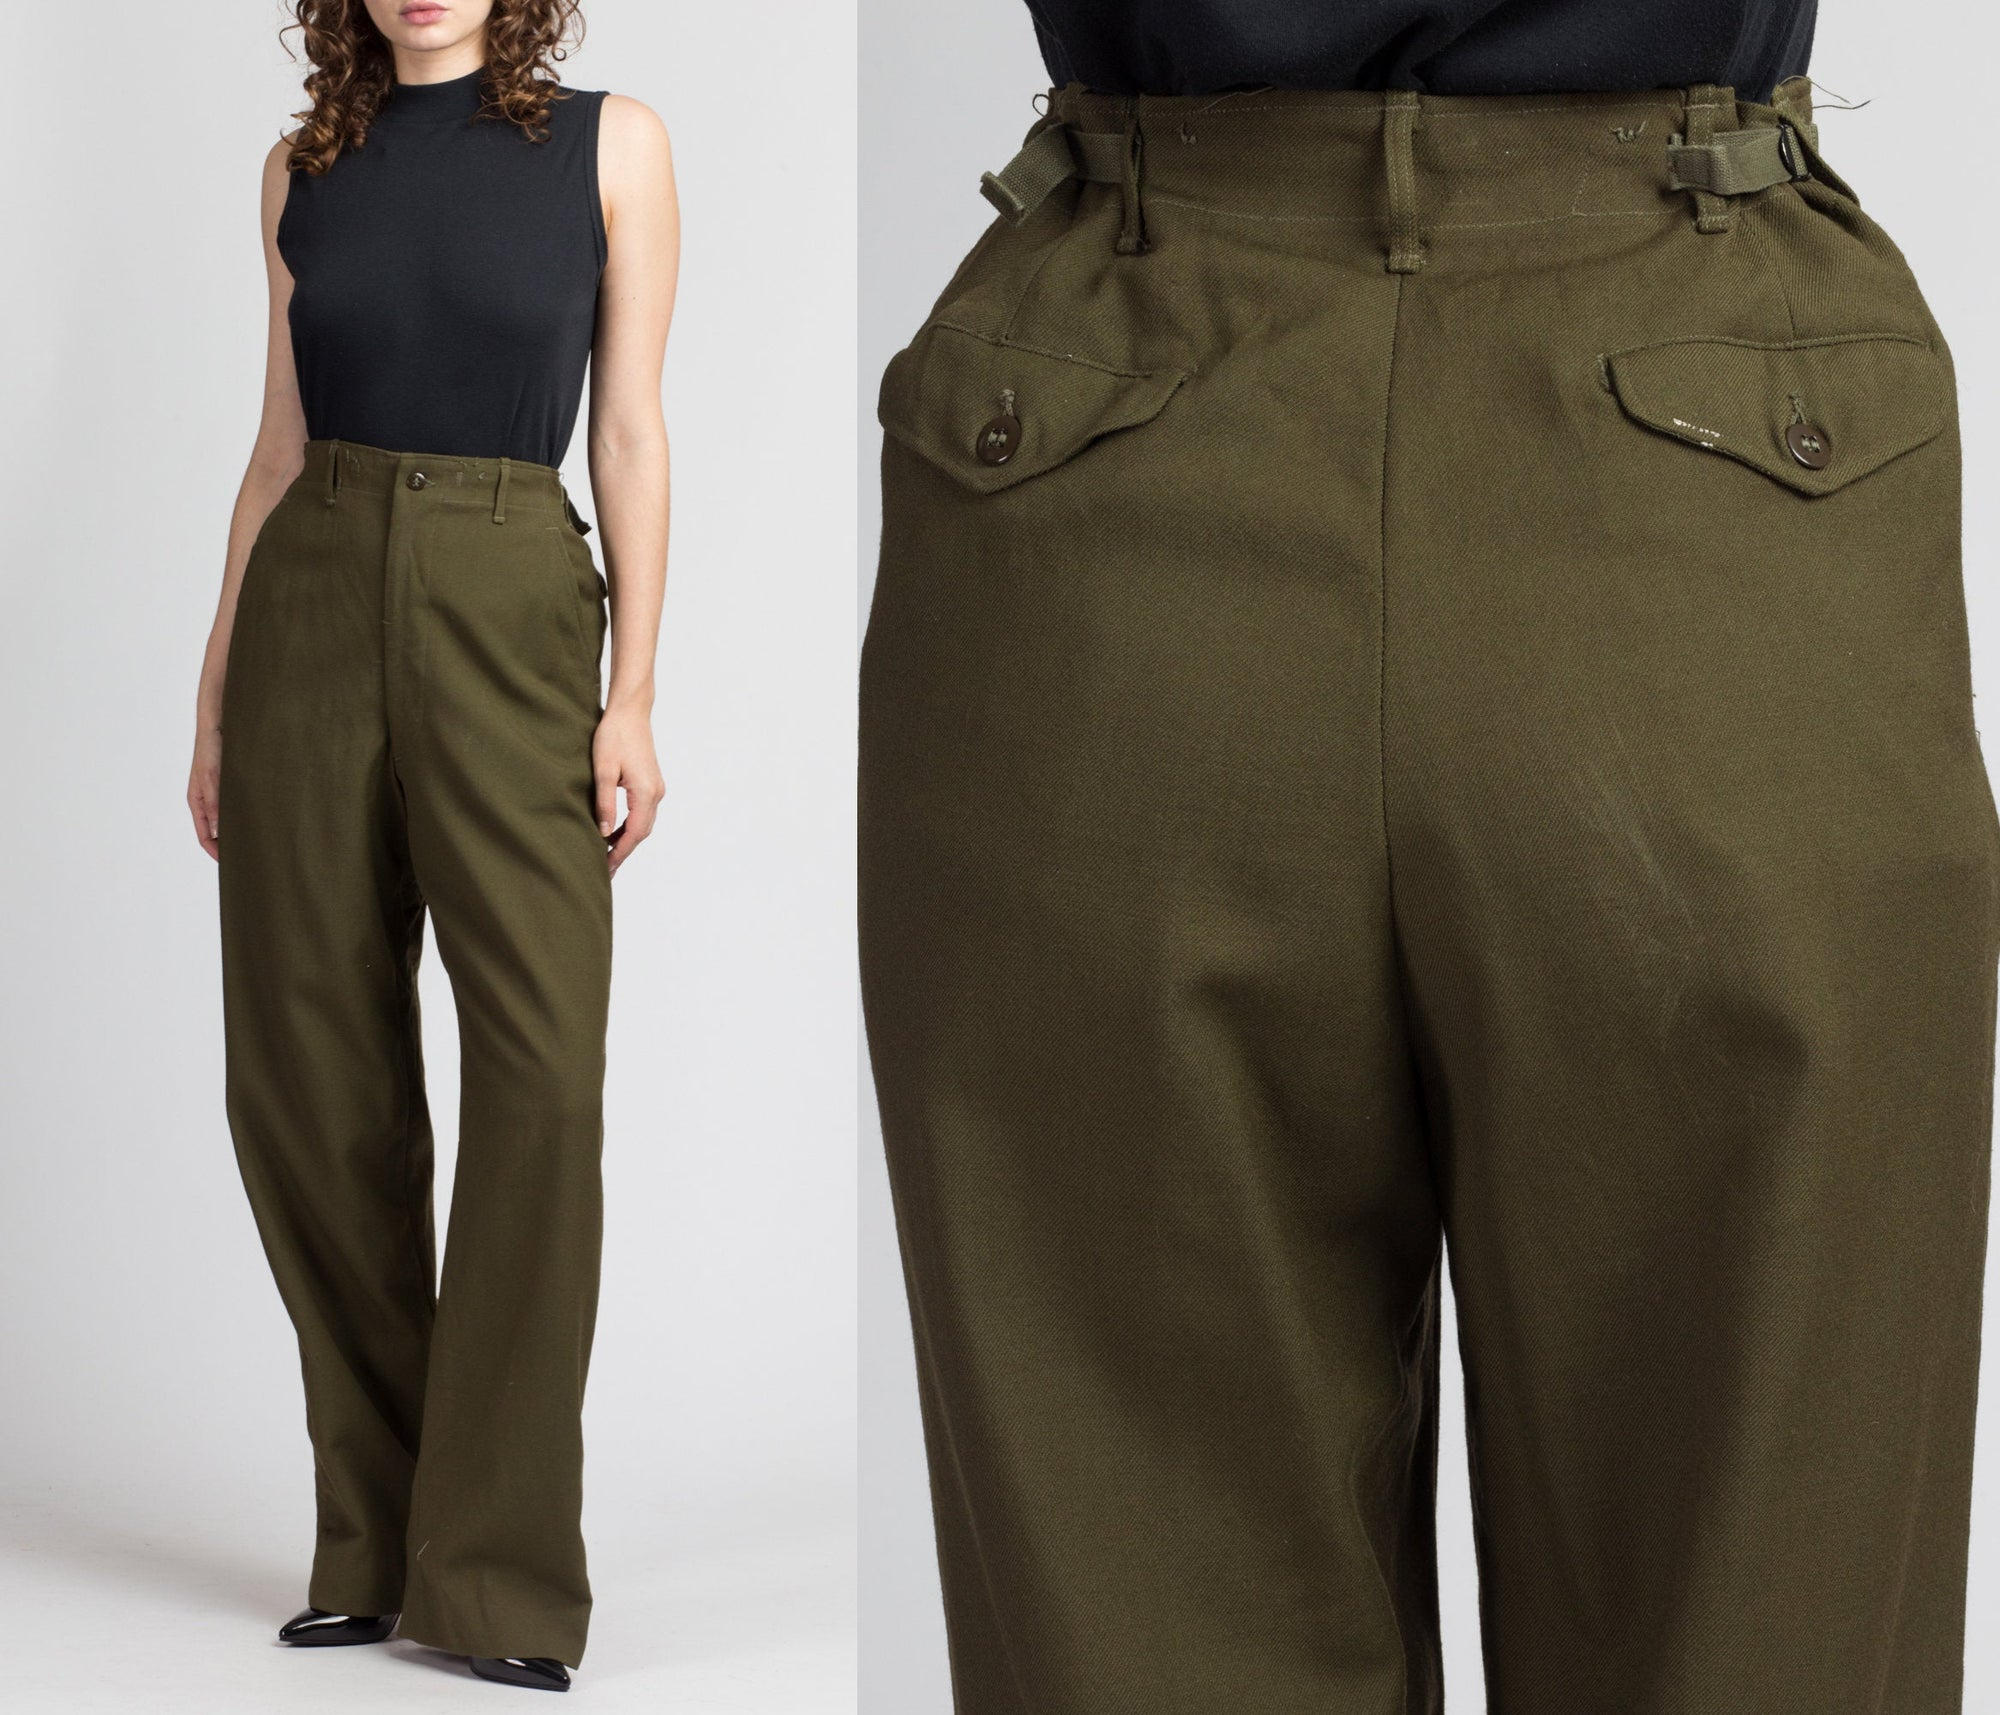 "Vintage 1950s Olive Wool Army Field Pants - Men's Small Long, 27""-31"""